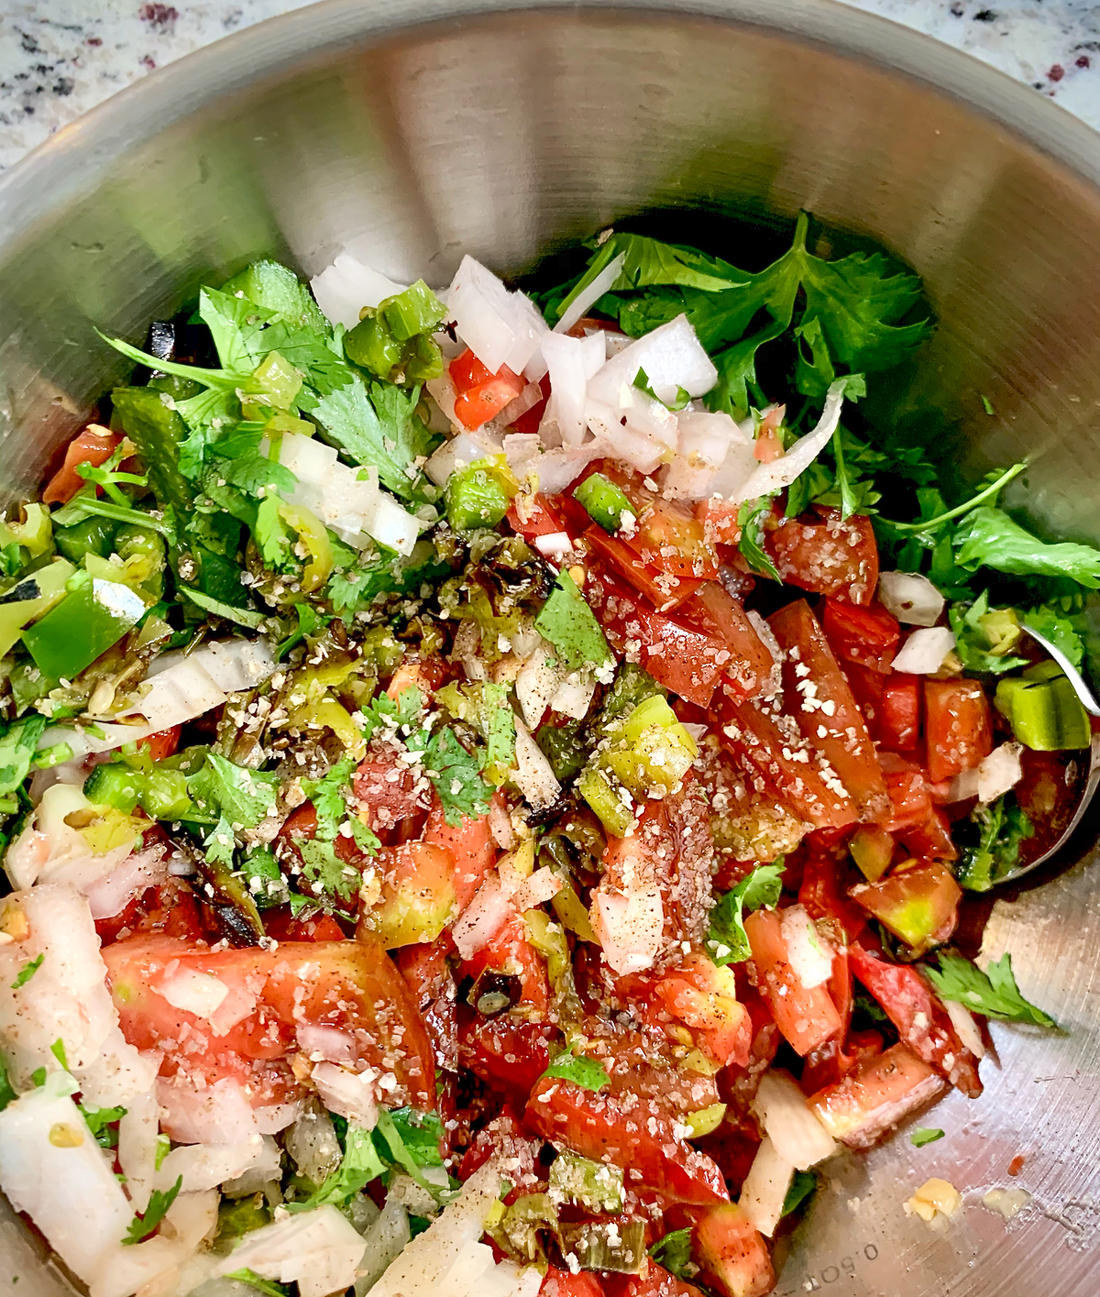 Mix the pico ingredients in a bowl. (B. Redfern photo)